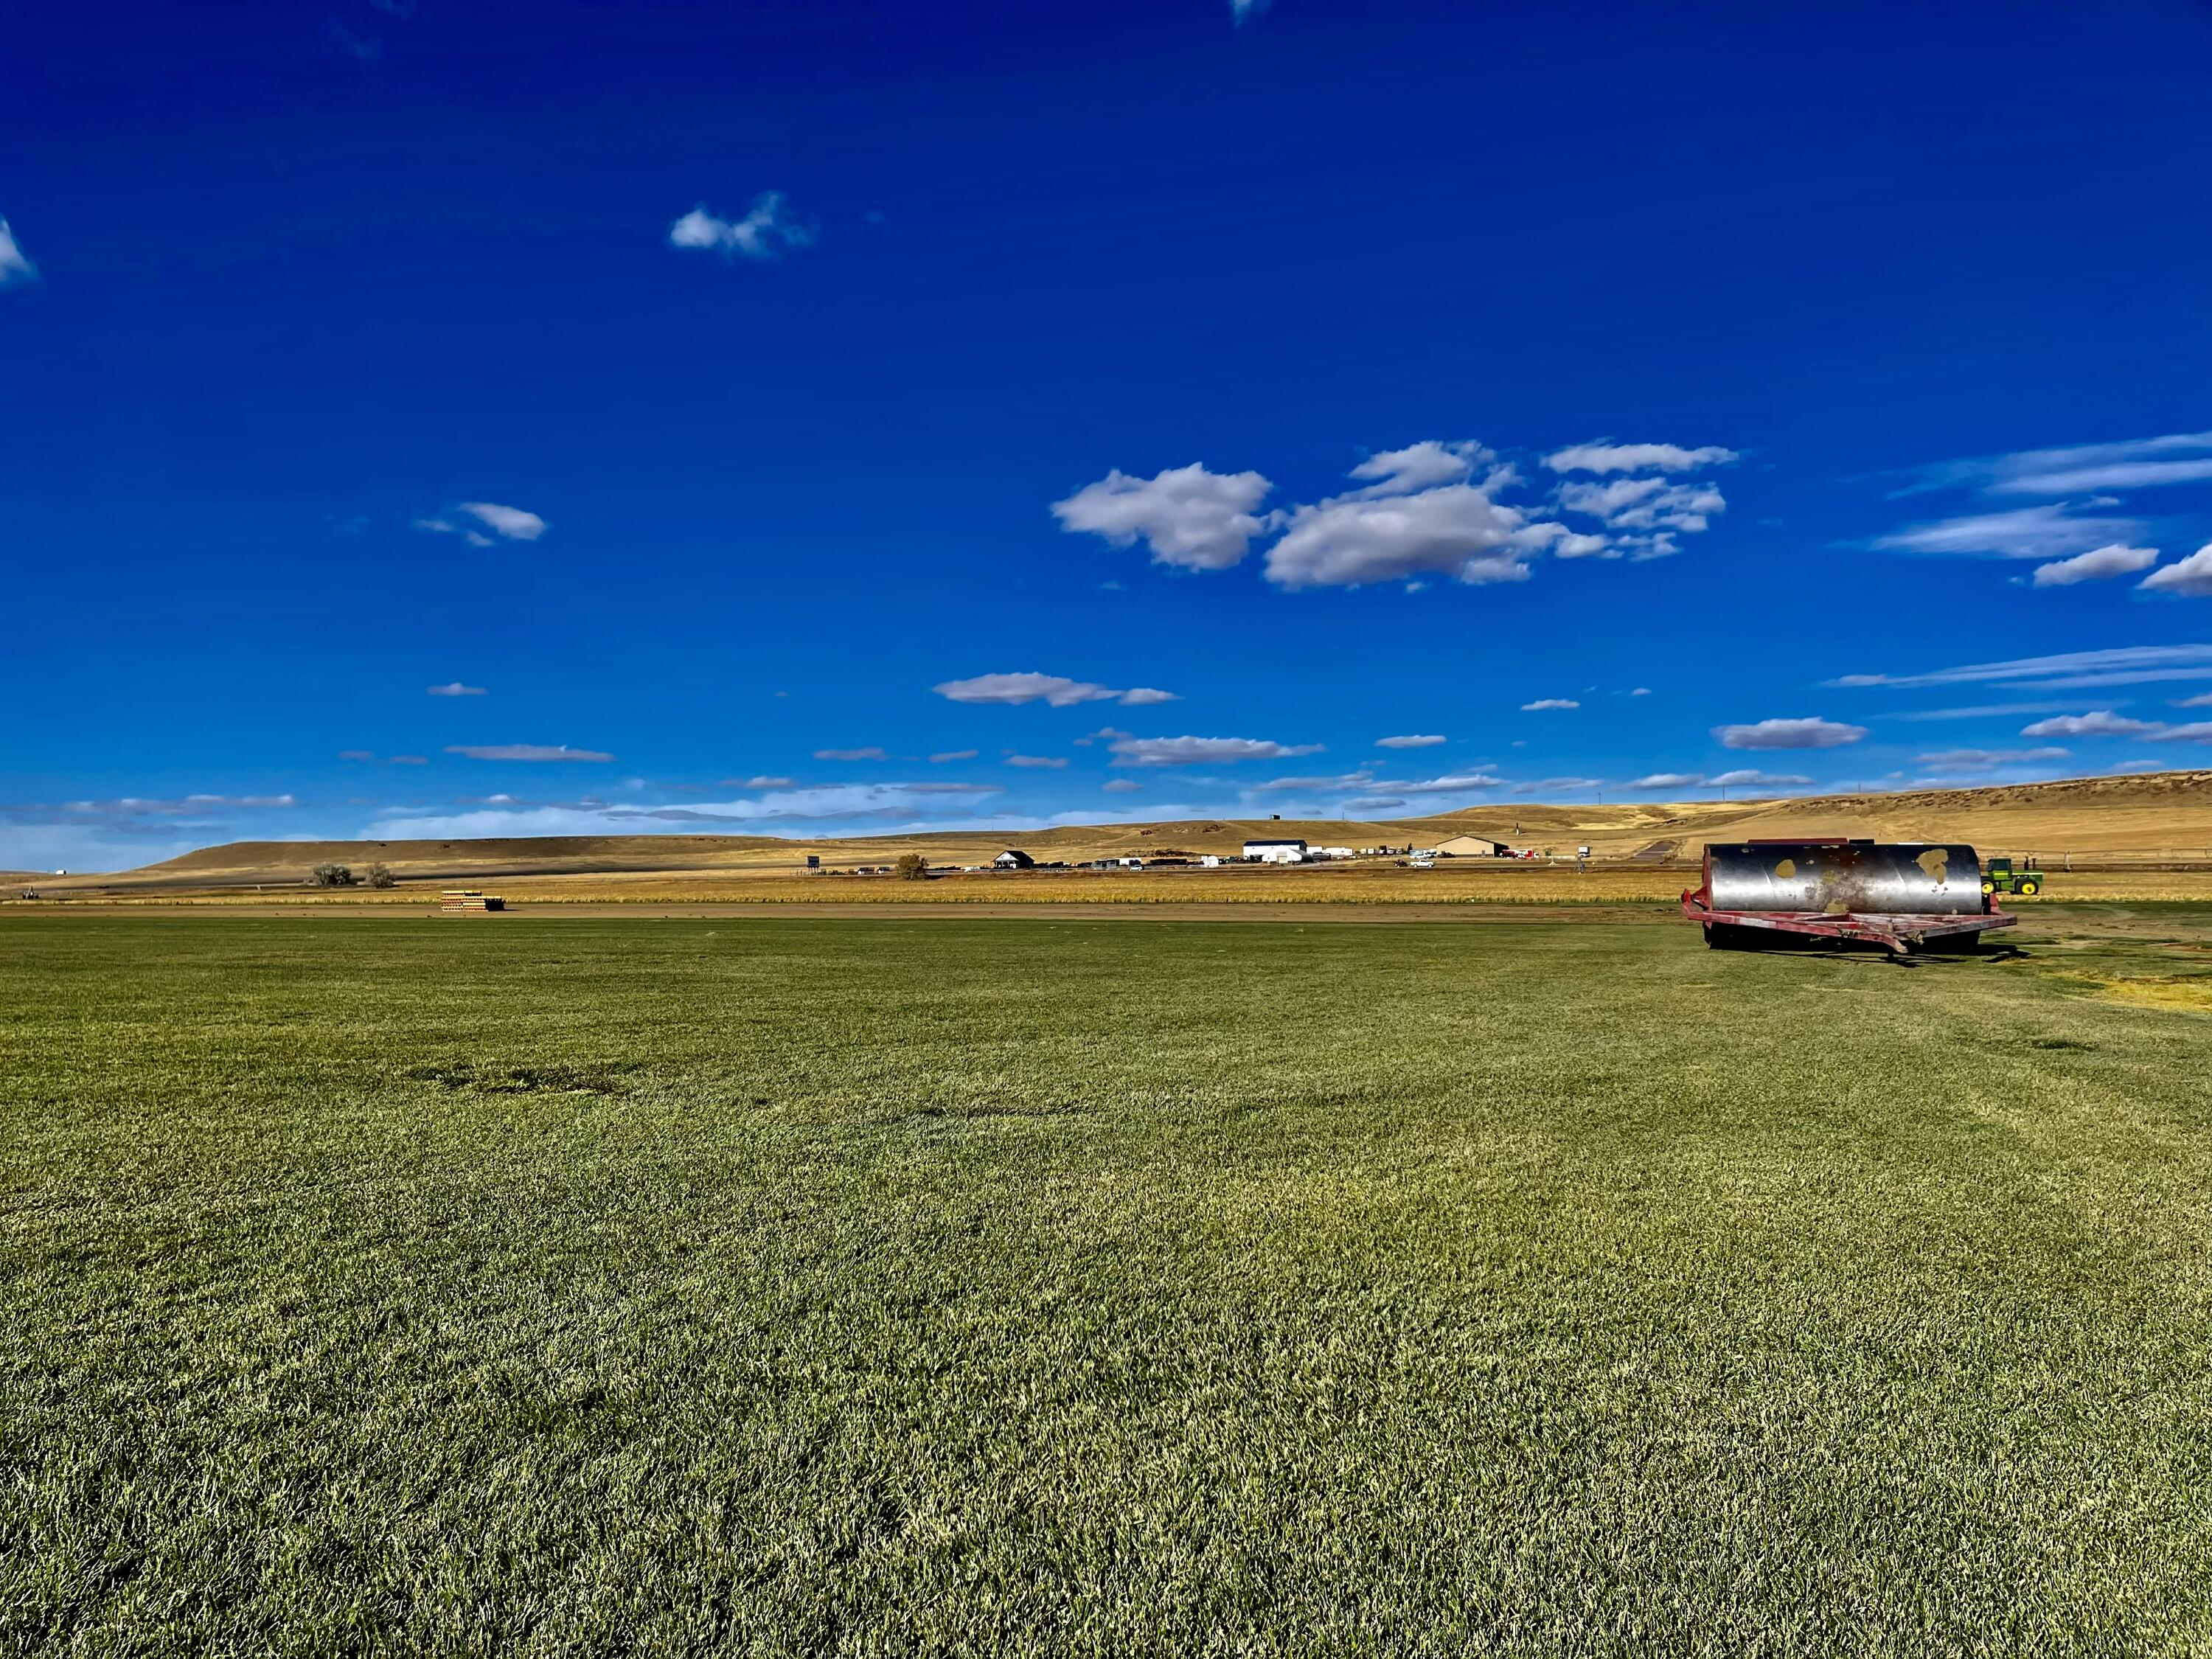 DREAMING OF RUNNING YOUR OWN MONTANA BUSINESS?  Check out this dreamy 276 acre sod farm that features 2 shops, 2 houses (2 bed 1 bath each) &  irrigation rights. Seller contracts with local retailers to provide sod! STEP RIGHT IN & RUN THIS BUSINESS as all of the necessary equipment conveys! Some equipment that conveys:3 Alumigator Pivots, 1 steel pivot (2015), 1984 GMC 2.5 ton flatbed, 1983 BMC 7000 flatbed, 2000 Kenworth t300 Truck Tractor, 2004 Freightliner Columbia Truck Tractor, 2002 6220 John Deere Trebro harvestack-sod harvester, 2000 5310 John Deere diesel, 1984 1450 John Deere diesel, 2007 5 foot RoataDairon Rototiller w/ seeder, & more. Shop tools include welders, drill press, drills, hand tools, etc. Listed by Melissa Dascoulias.